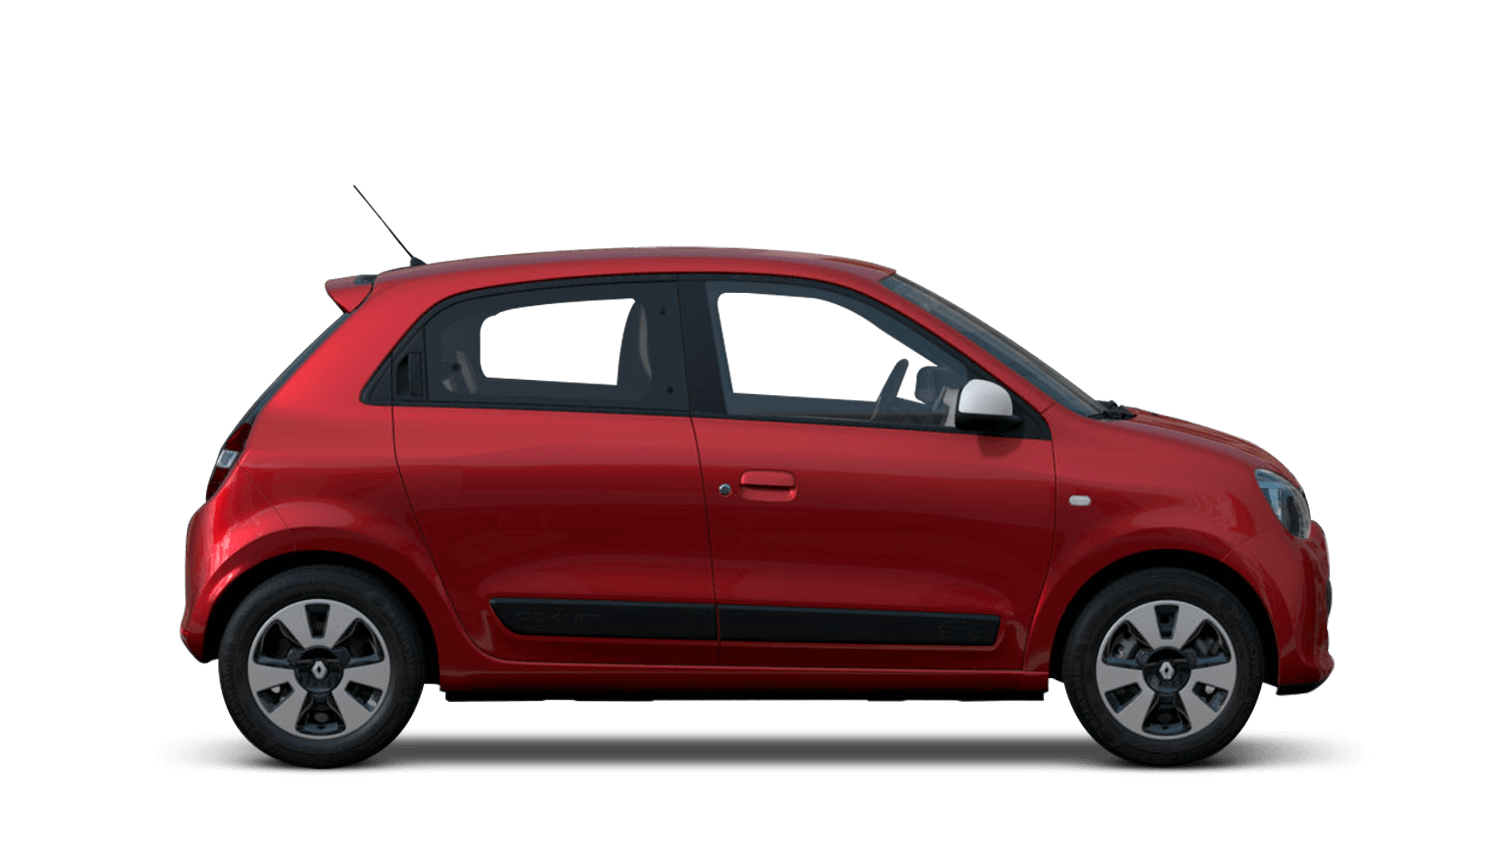 Flame Red Renault Twingo